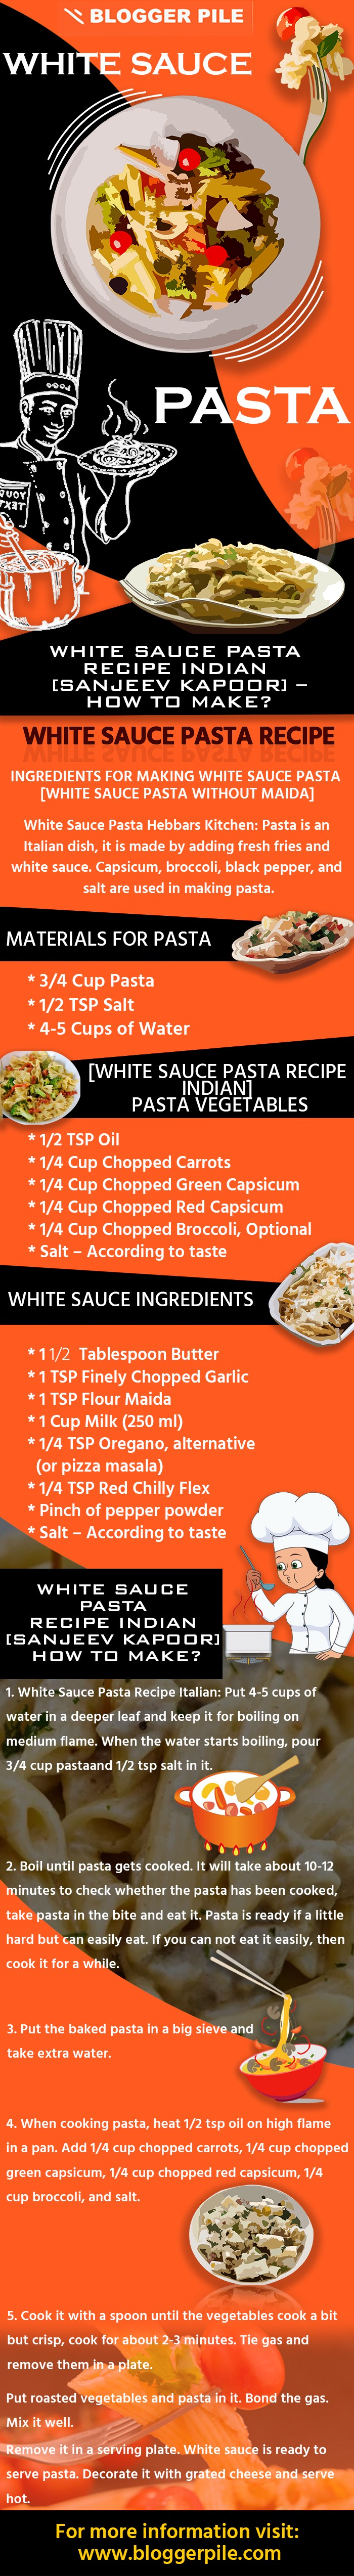 White Sauce Pasta Recipe Indian Sanjeev Kapoor How To Make By Bloggerpile Medium